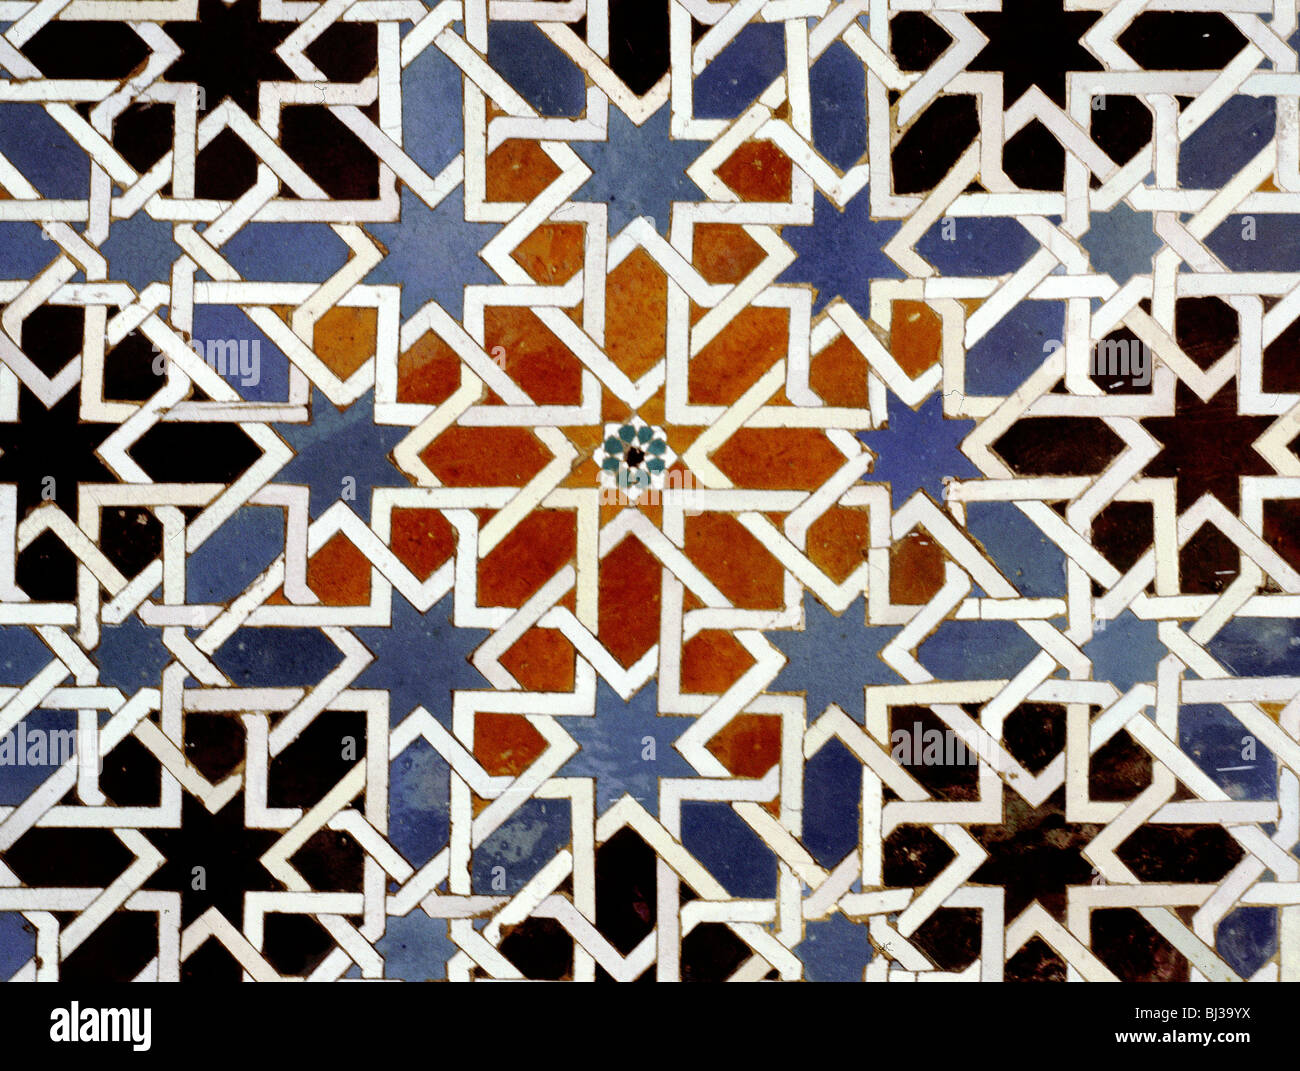 Ceramic tiles from the alcazar of seville andalusia spain 14th ceramic tiles from the alcazar of seville andalusia spain 14th century artist werner forman dailygadgetfo Choice Image